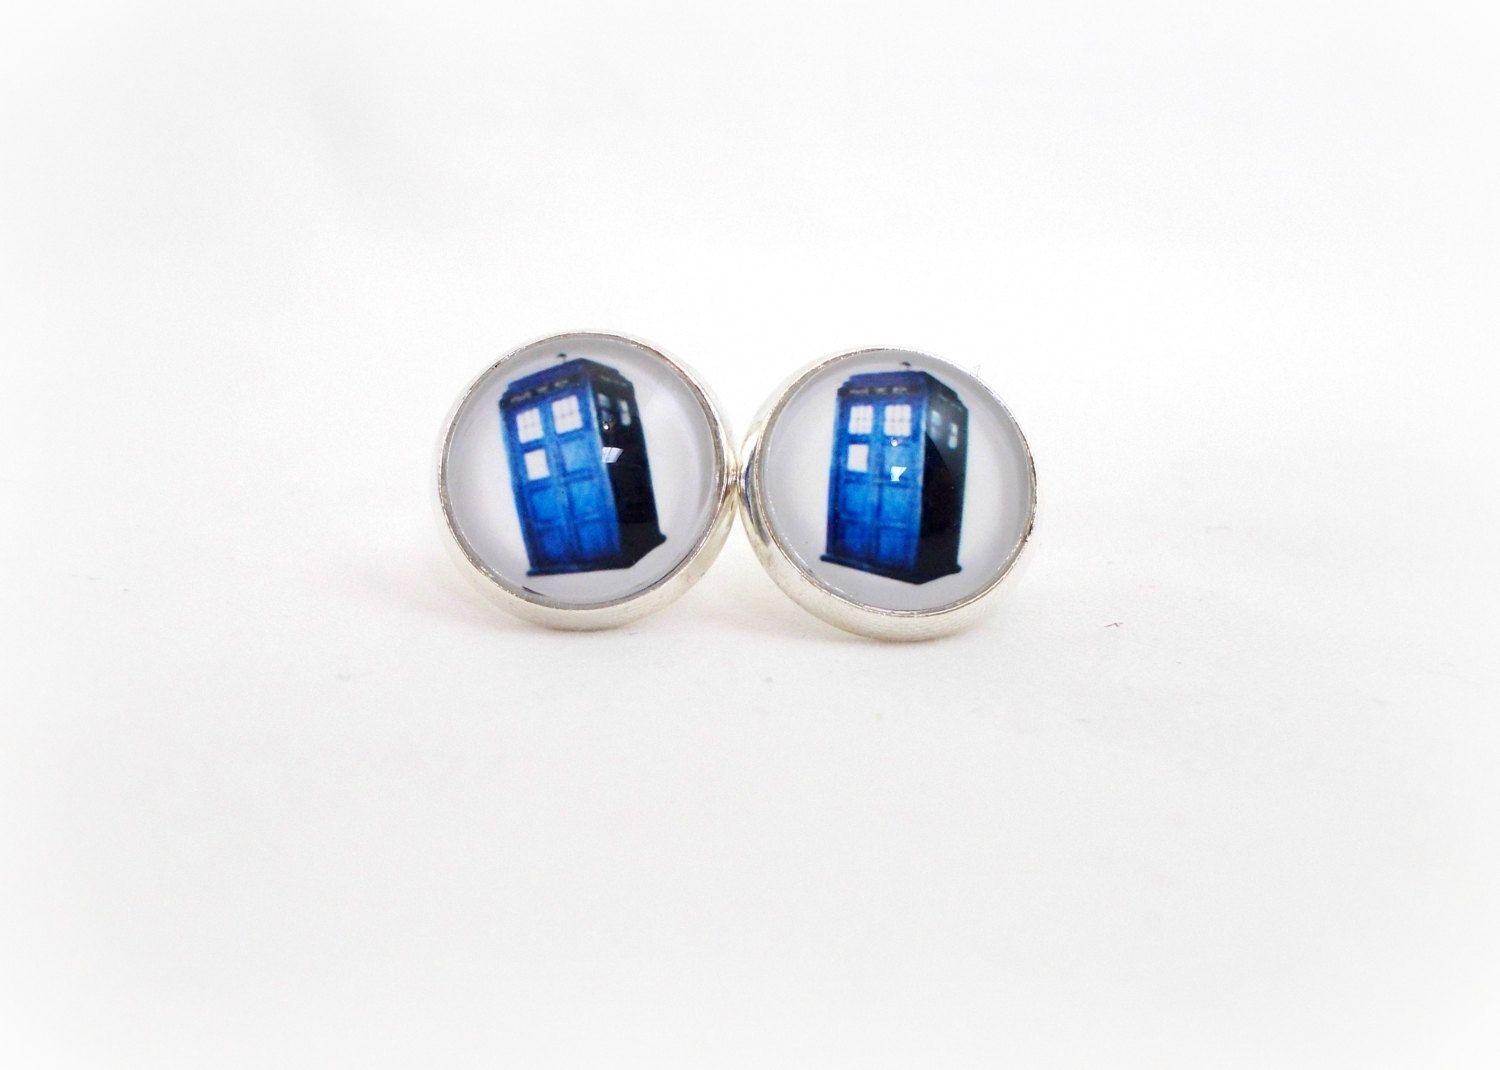 Blue Phone Booth Earrings Fun For S Stocking Stuffers